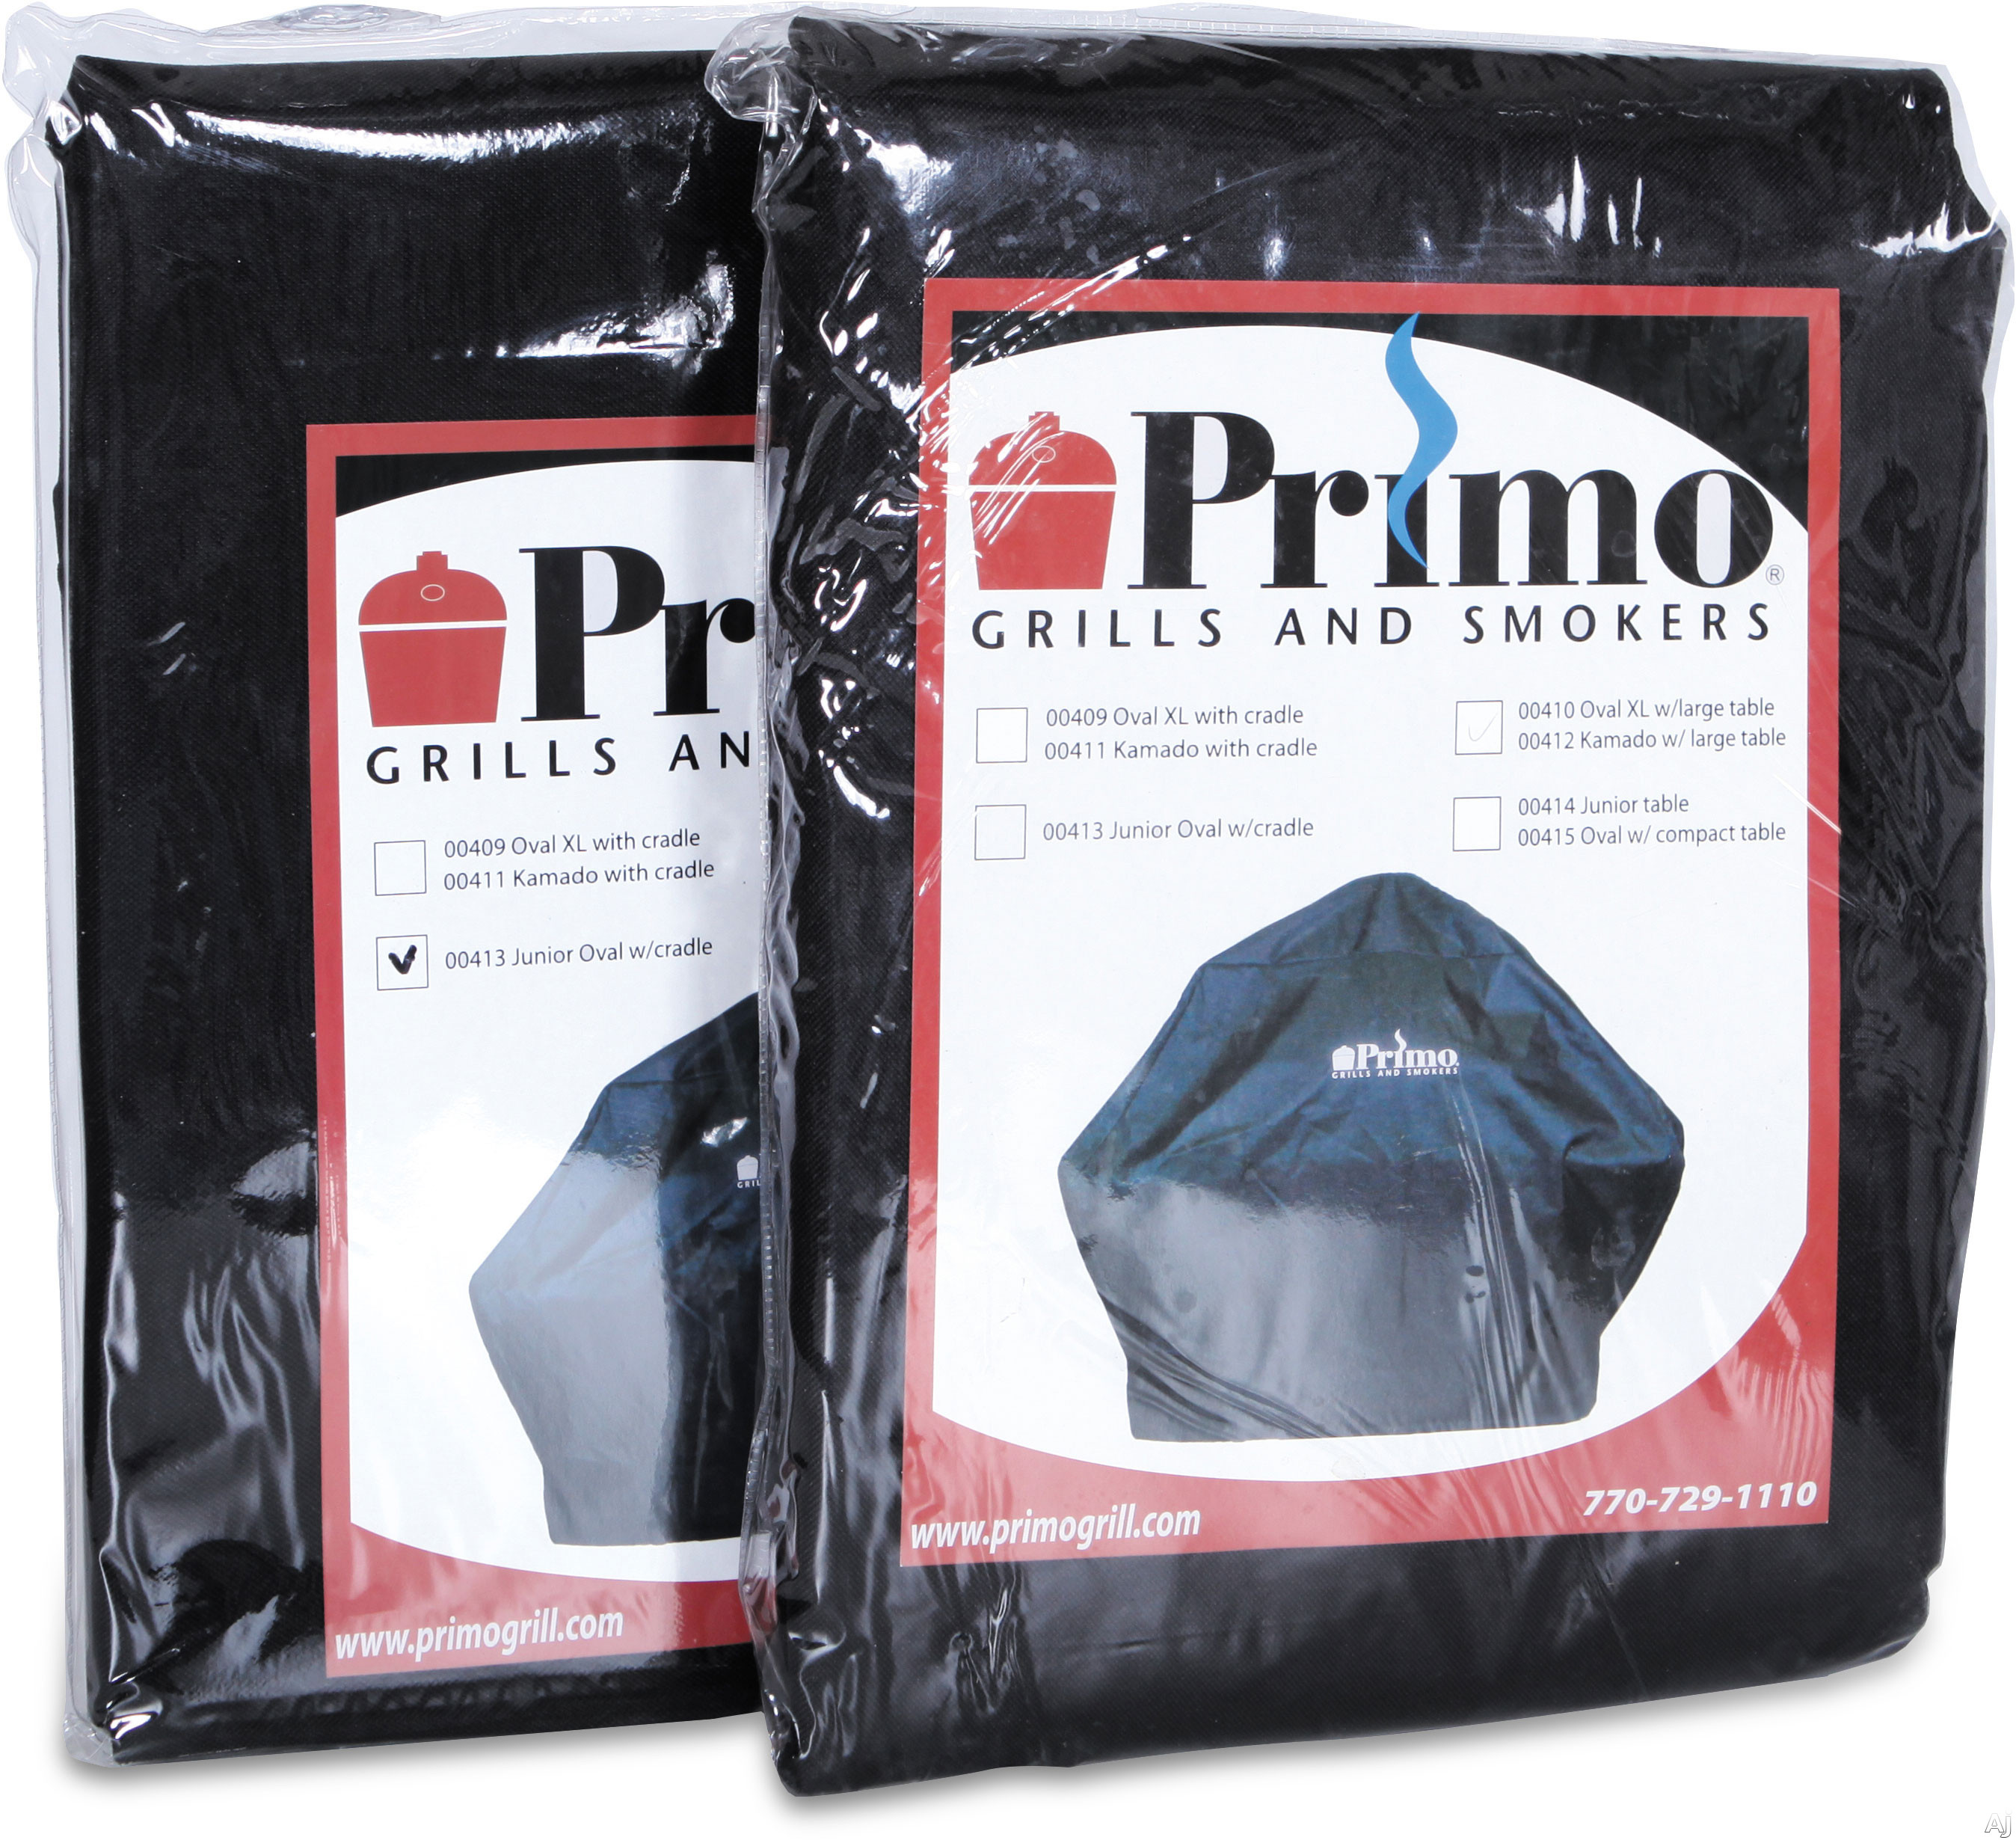 Primo 409 Grill Cover - For Oval 400 and Kamado In Cradle